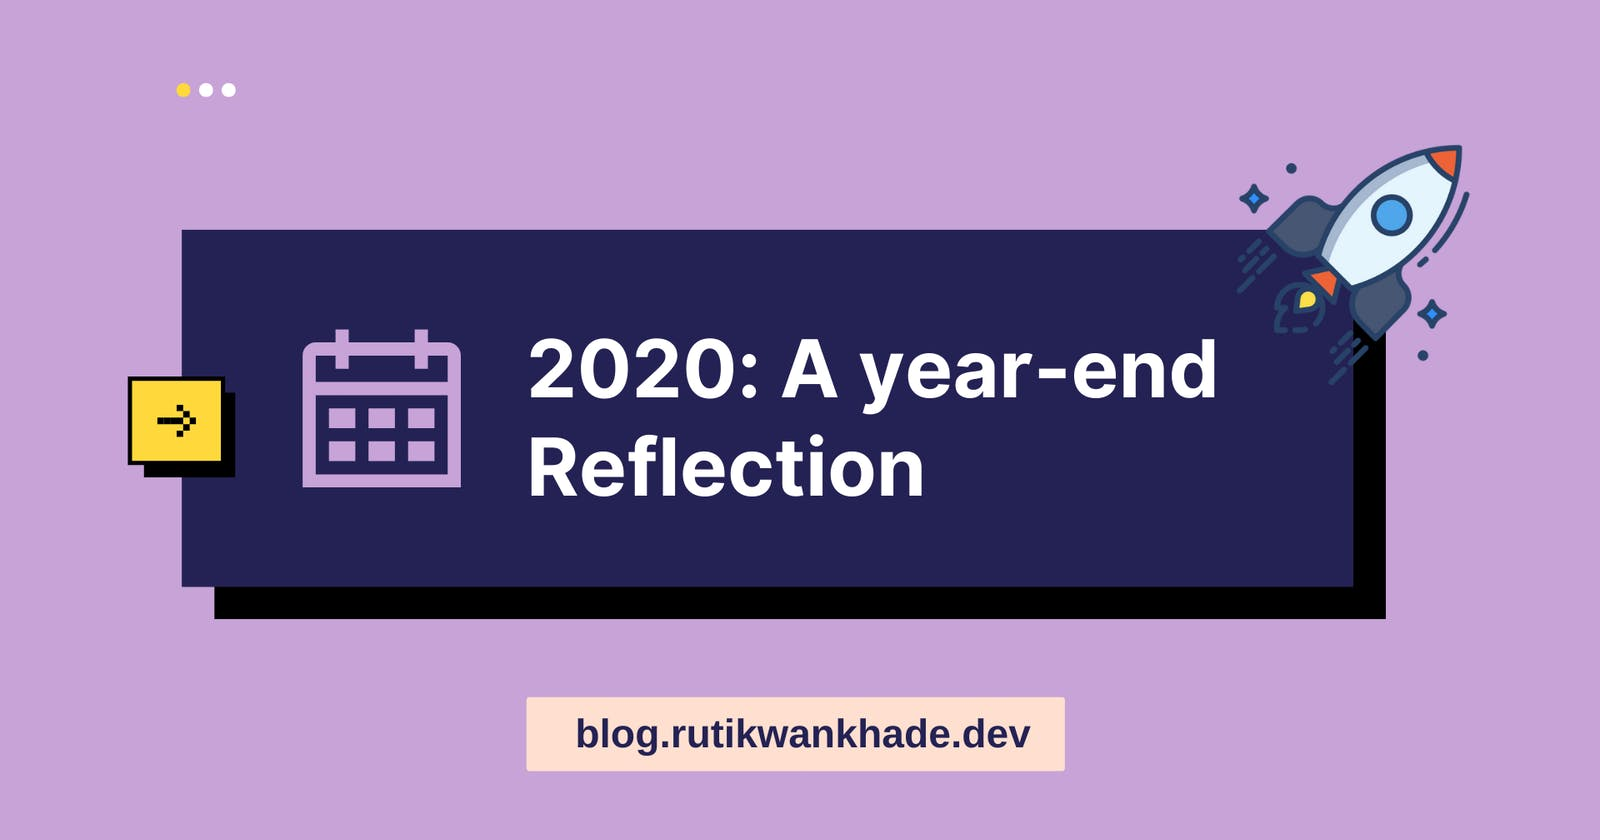 2020: A year-end reflection